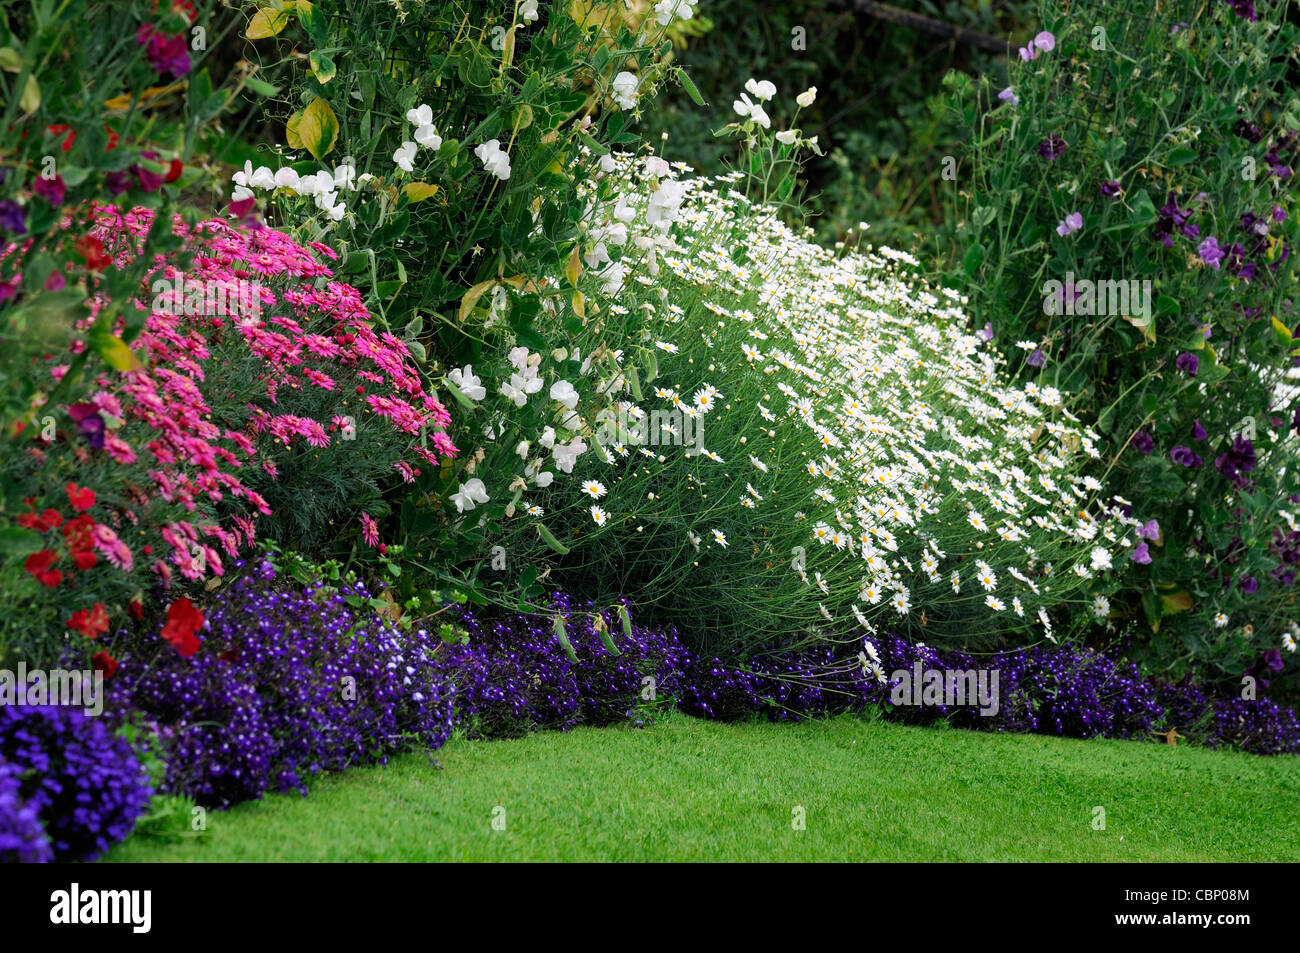 Summer flowering perennials stock photos summer flowering summer flowering flowers herbaceous border bed flower plant planting mixed perennials colour color stock image mightylinksfo Choice Image